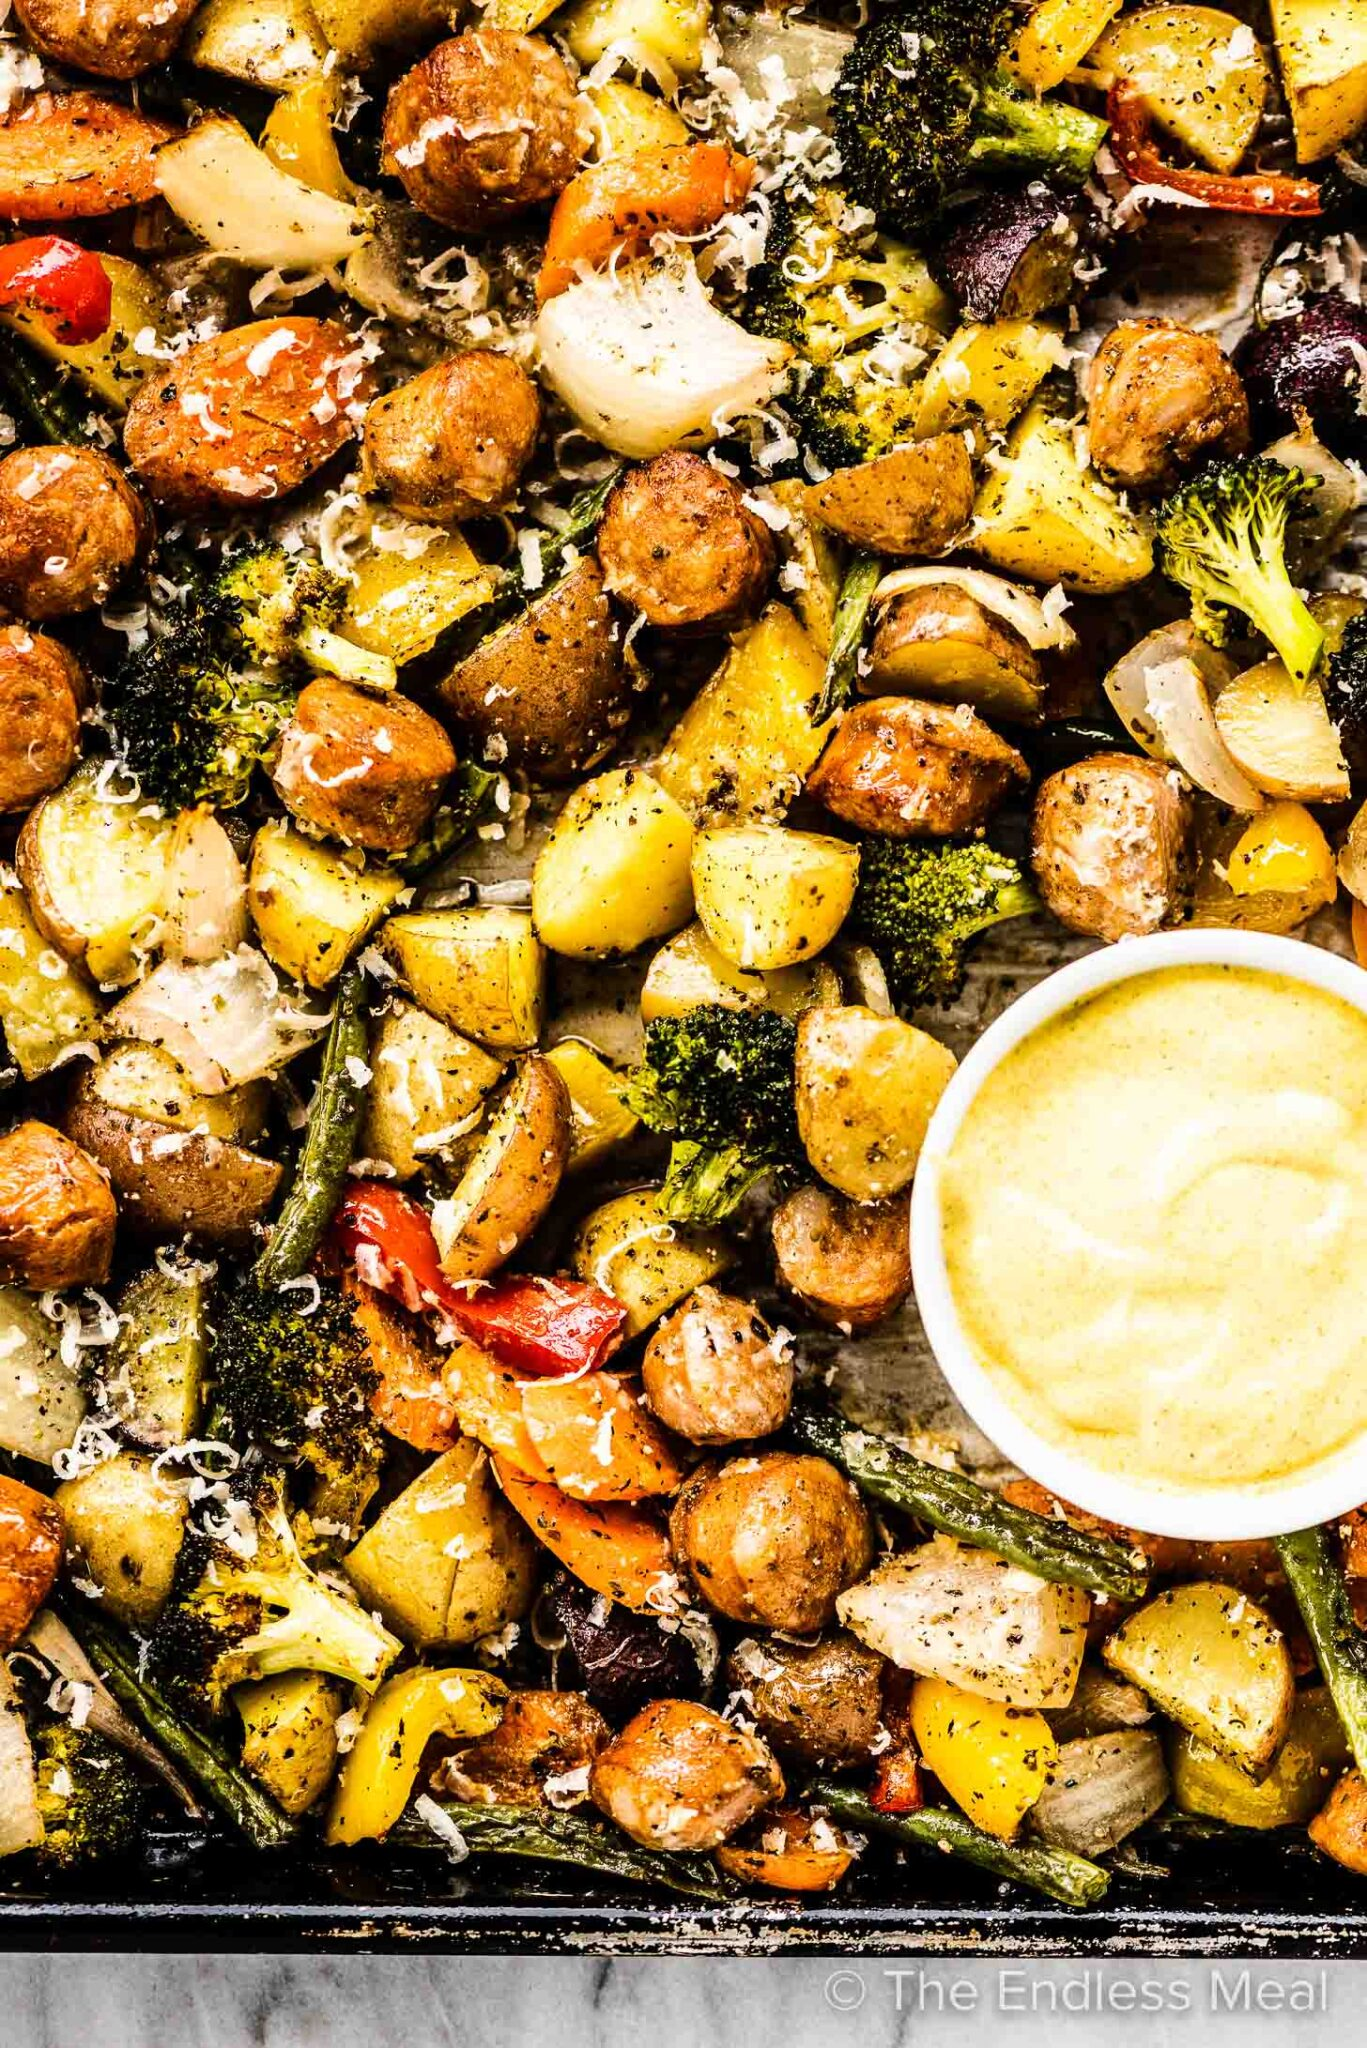 Sheet pan sausages and veggies on a baking sheet with a bowl of dipping sauce.